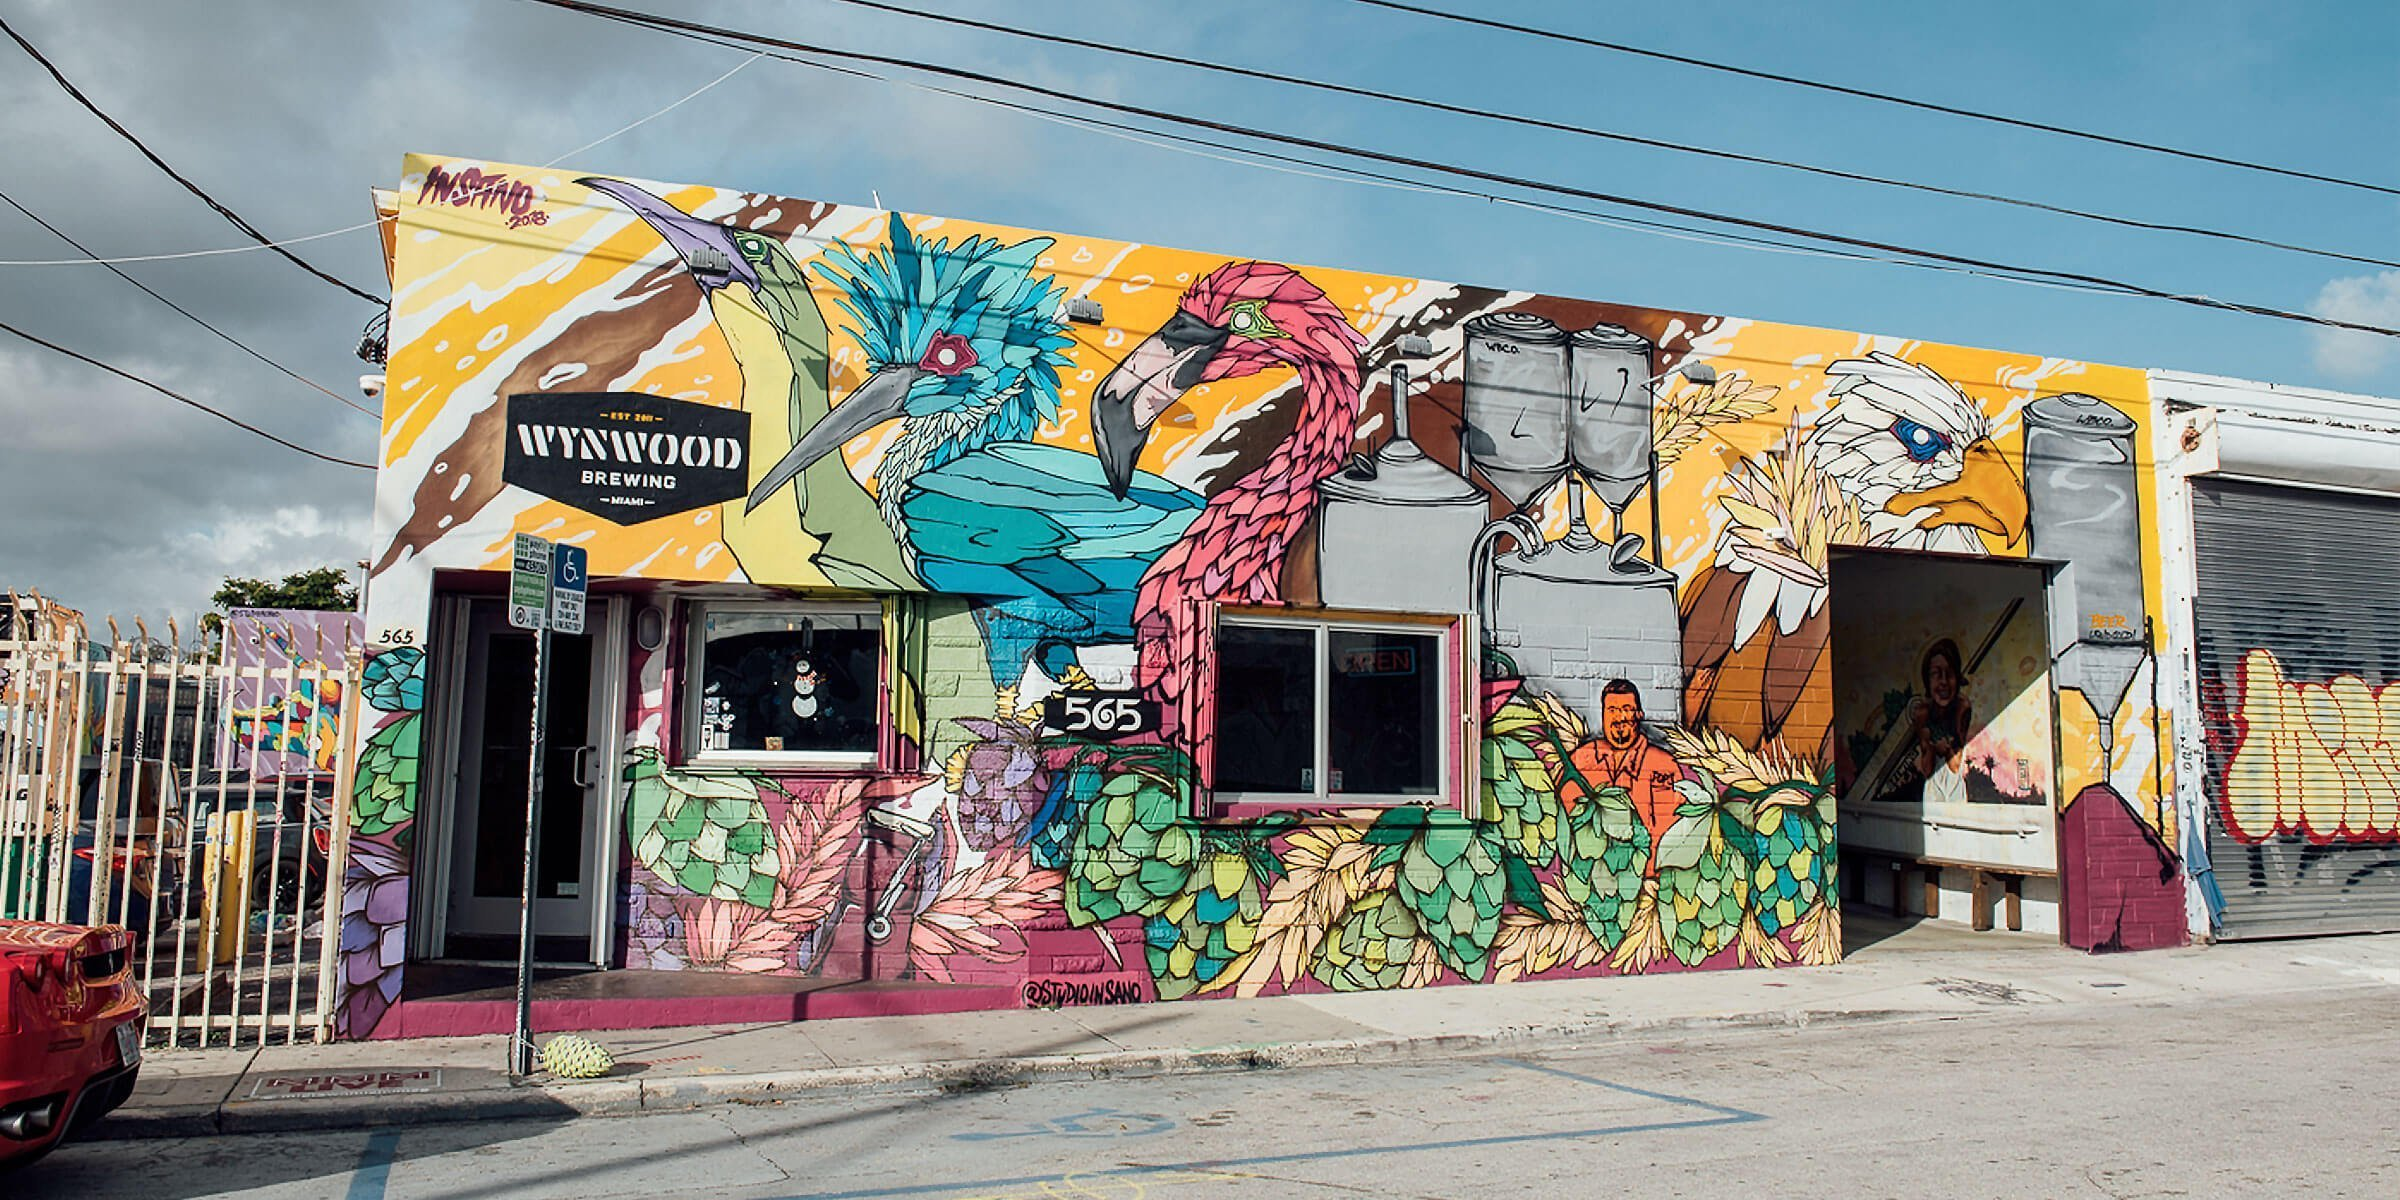 Outside the entrance to Wynwood Brewing Company in Miami, Florida